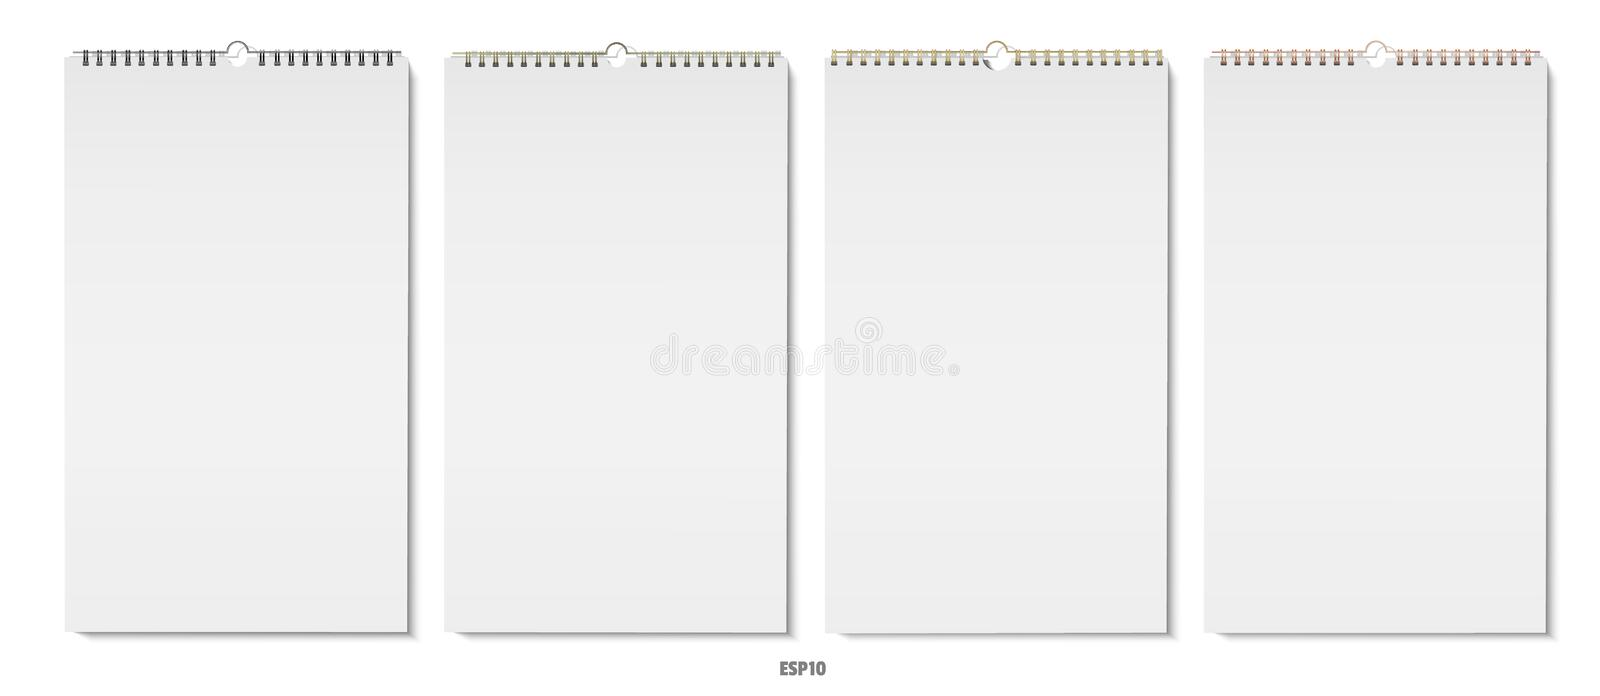 Vertical note pads vector royalty free illustration